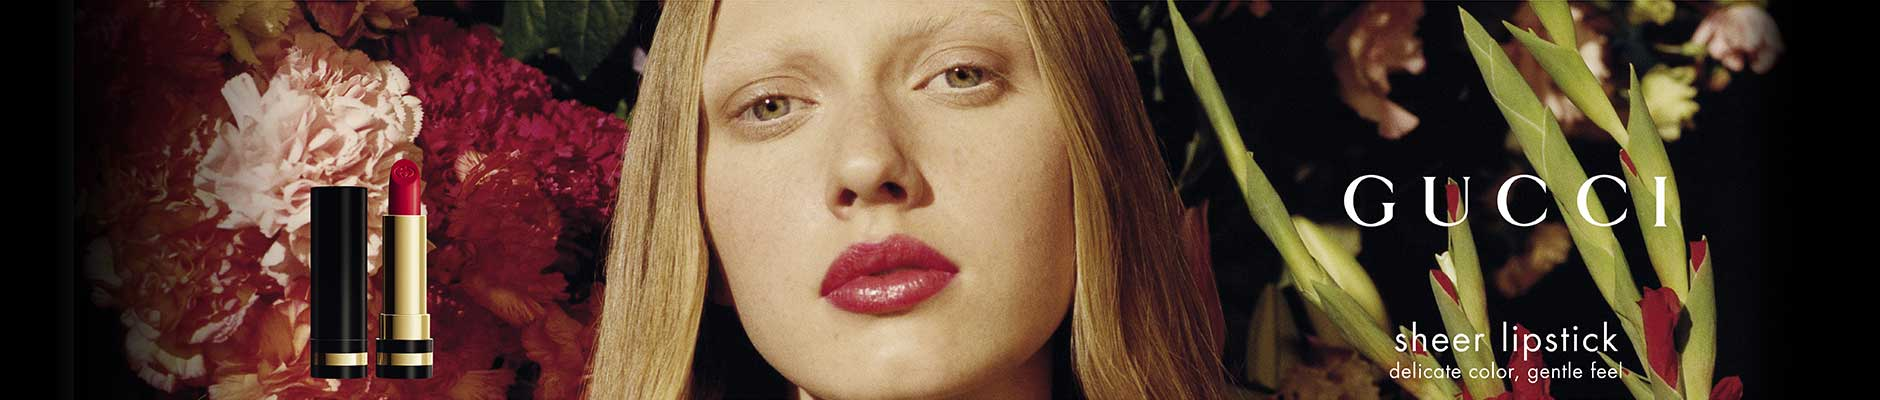 Gucci: sheer lipstick - delicate color, gentle feel